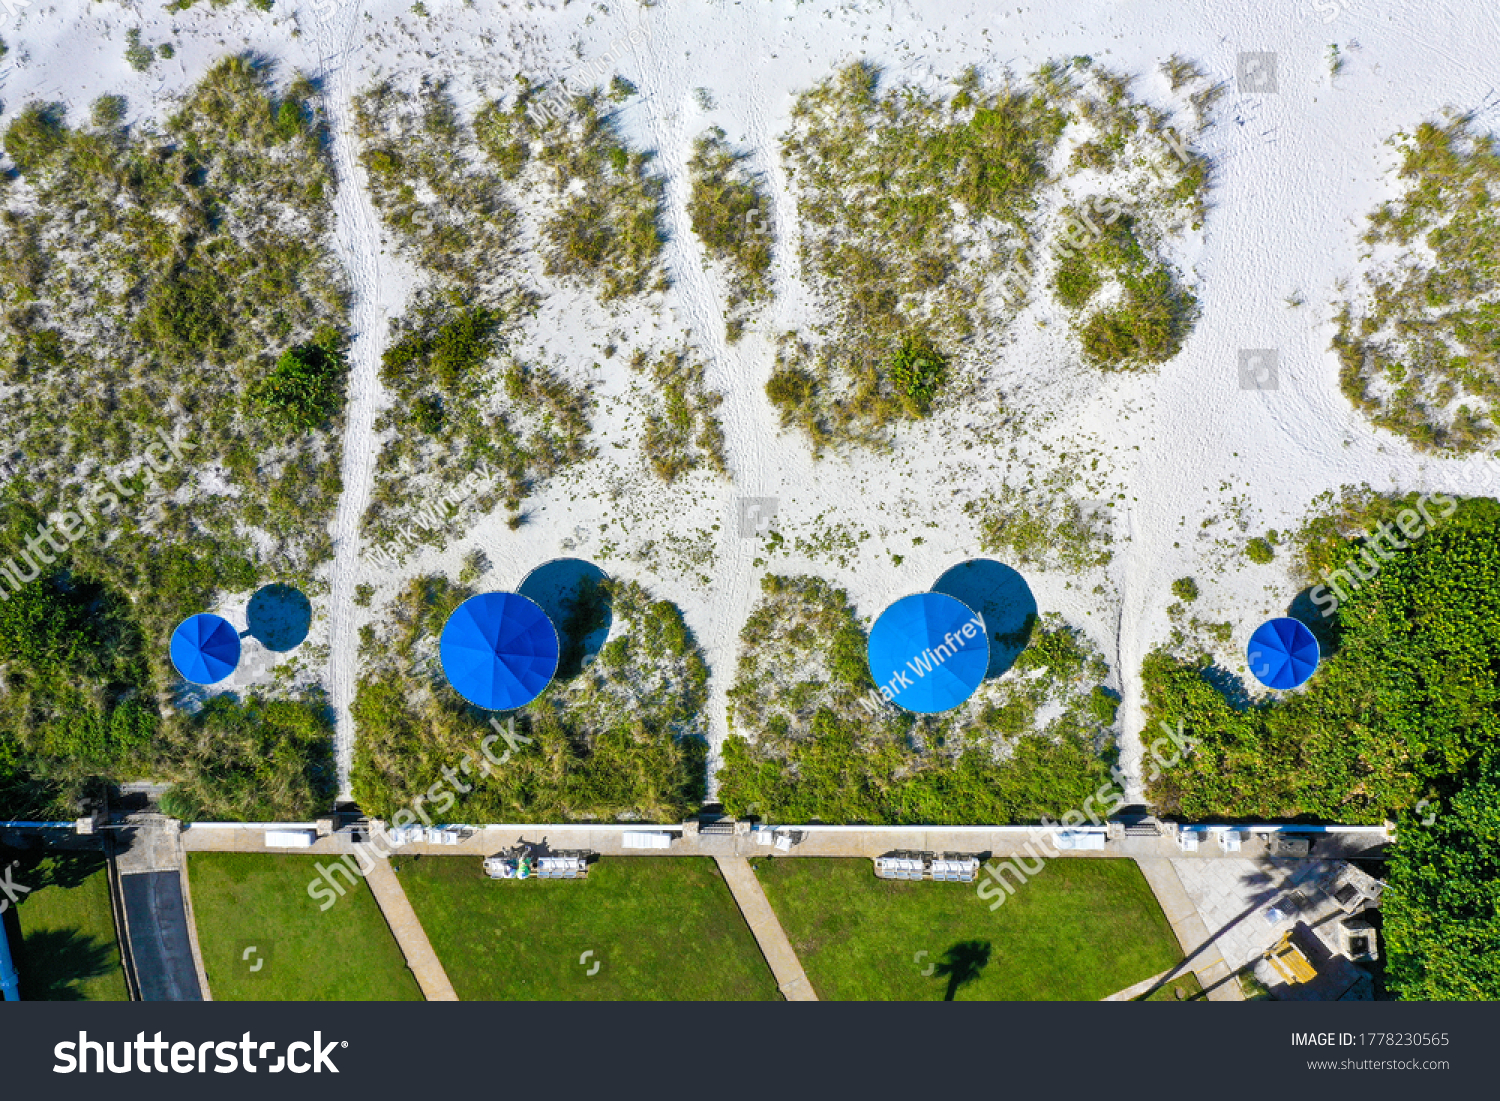 stock-photo-an-aerial-view-of-four-blue-